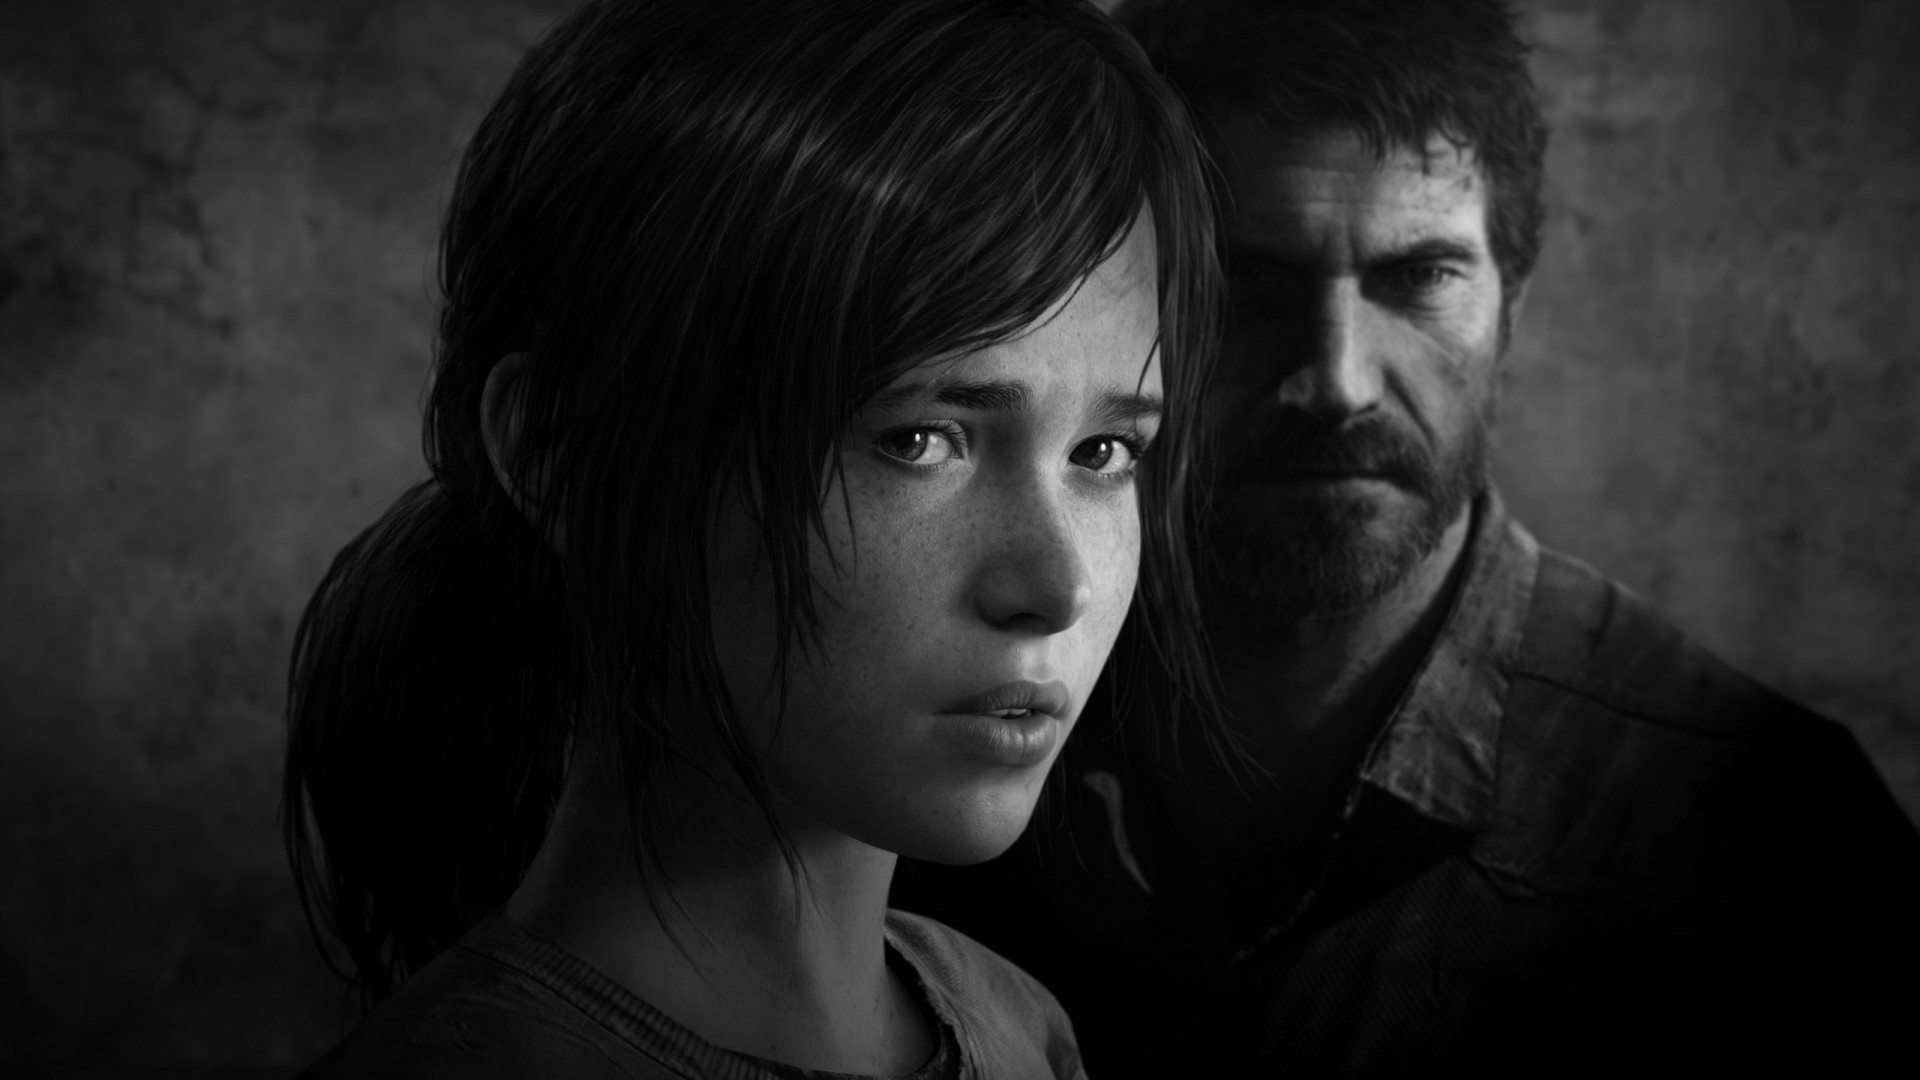 The Last Of Us  IS a work of art.